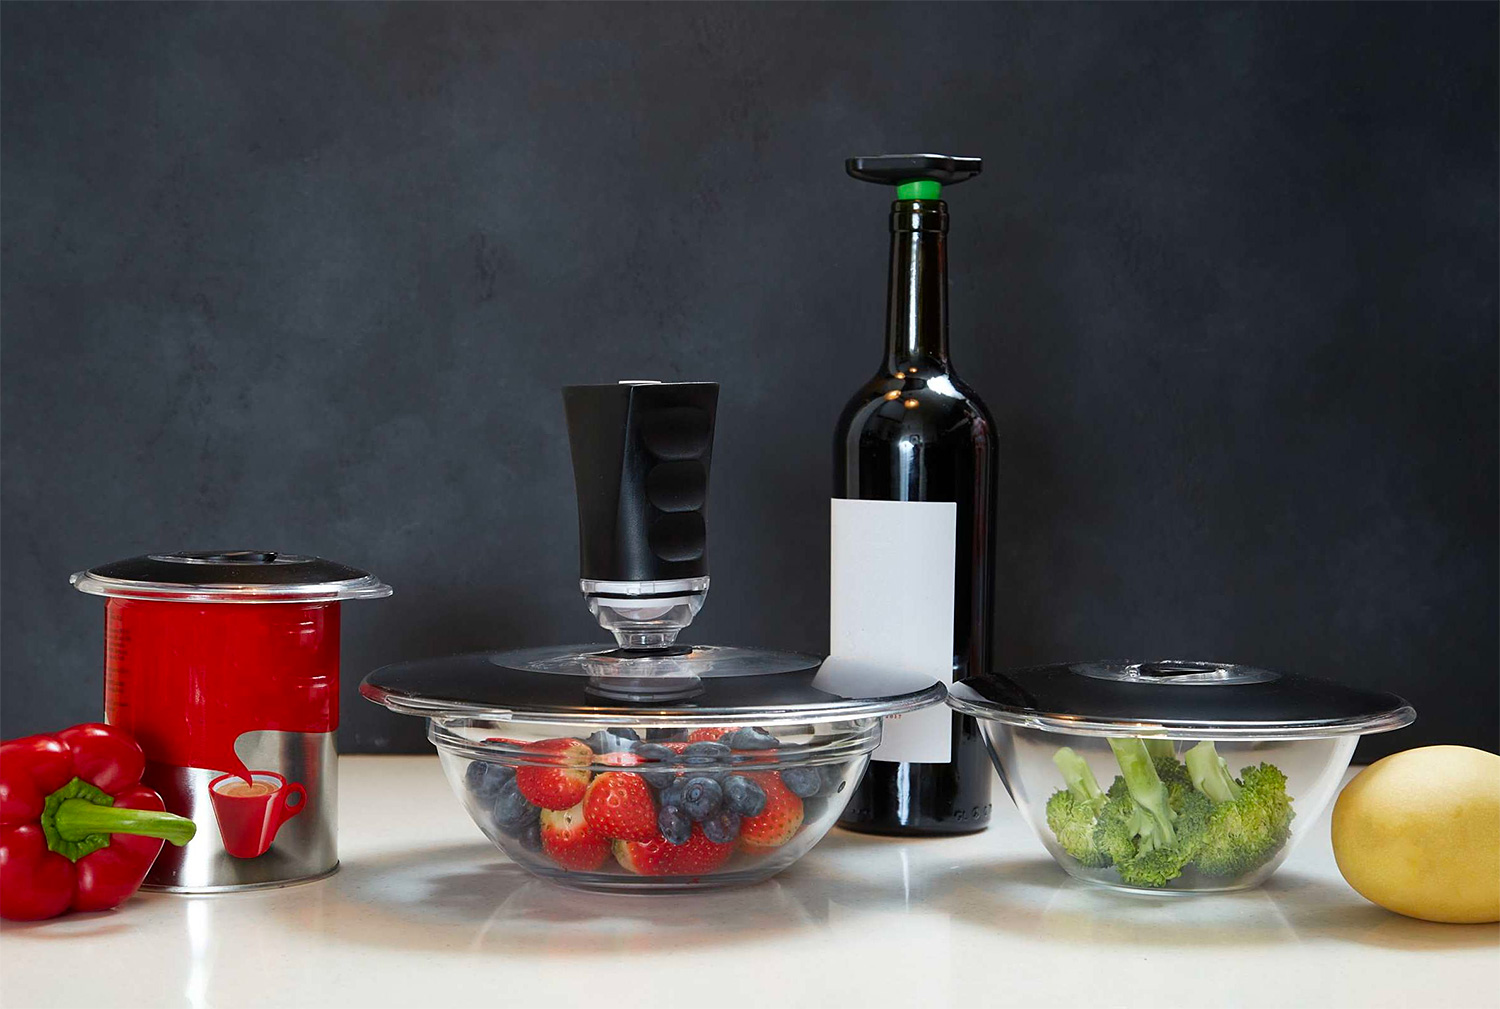 These Vacuum Lids Keep Food Fresher & Reduce Waste at werd.com